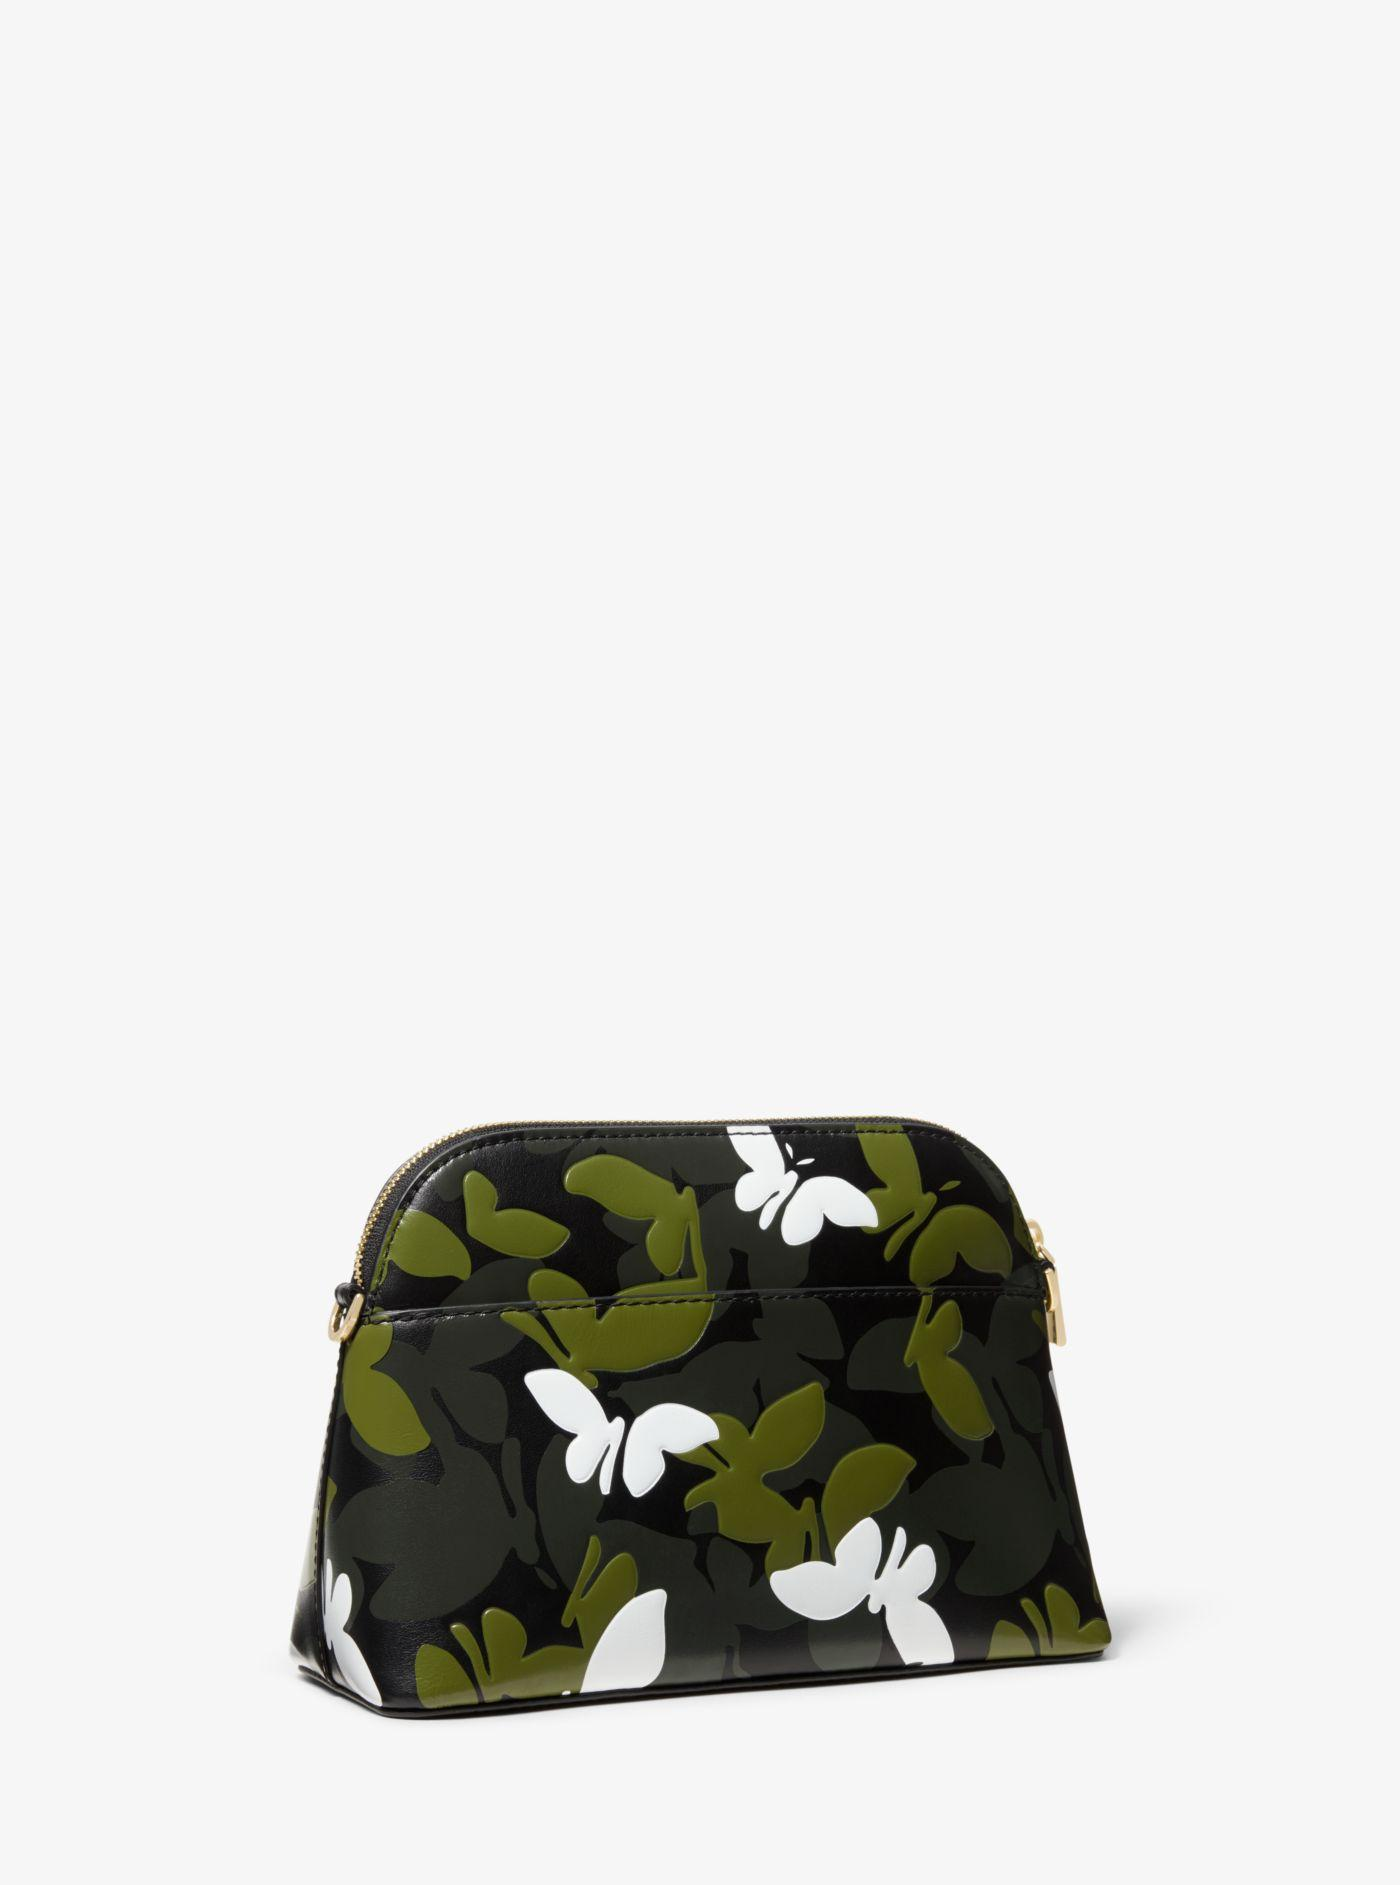 a7f131719e57 Michael Kors - Black Large Butterfly Camo Leather Dome Crossbody - Lyst.  View fullscreen